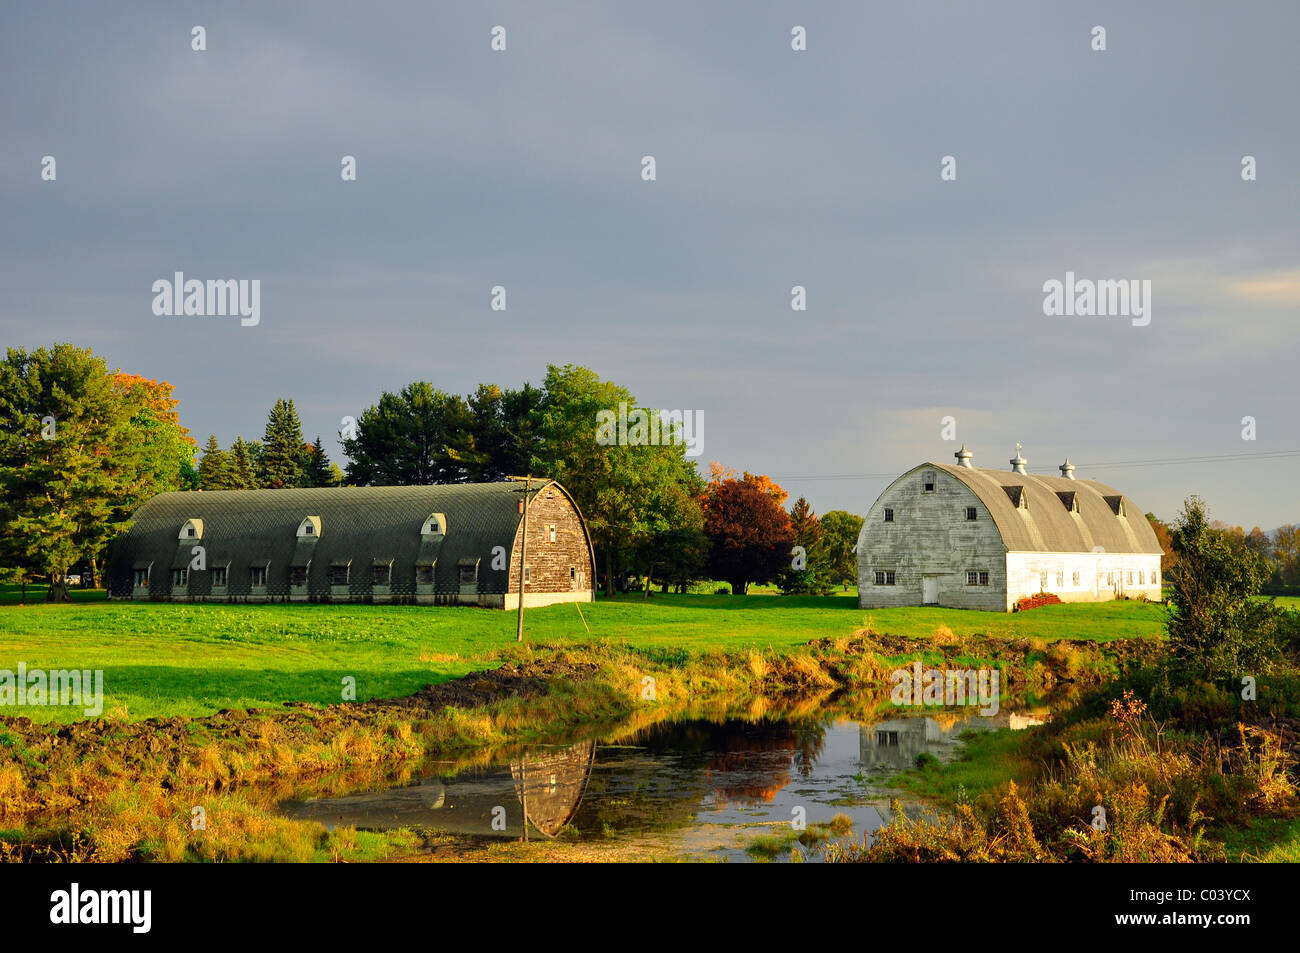 Two old barns in front of a small pond, Montgomery County, Upstate New York. - Stock Image